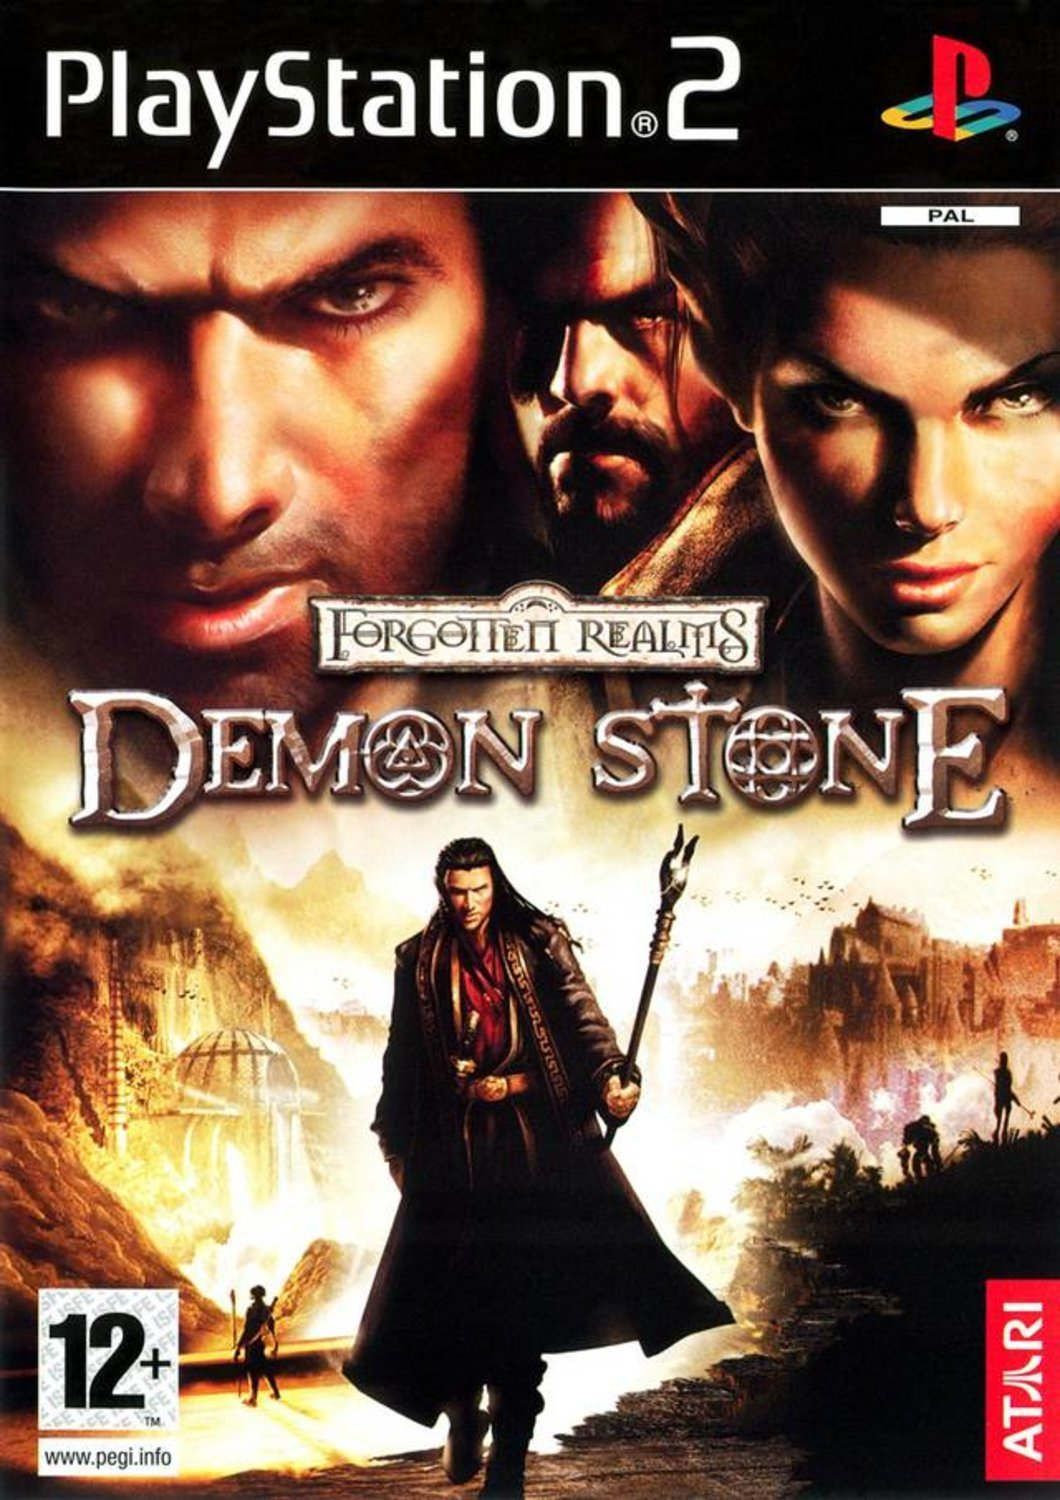 Forgotten Realms: Demon Stone - Playstation 2